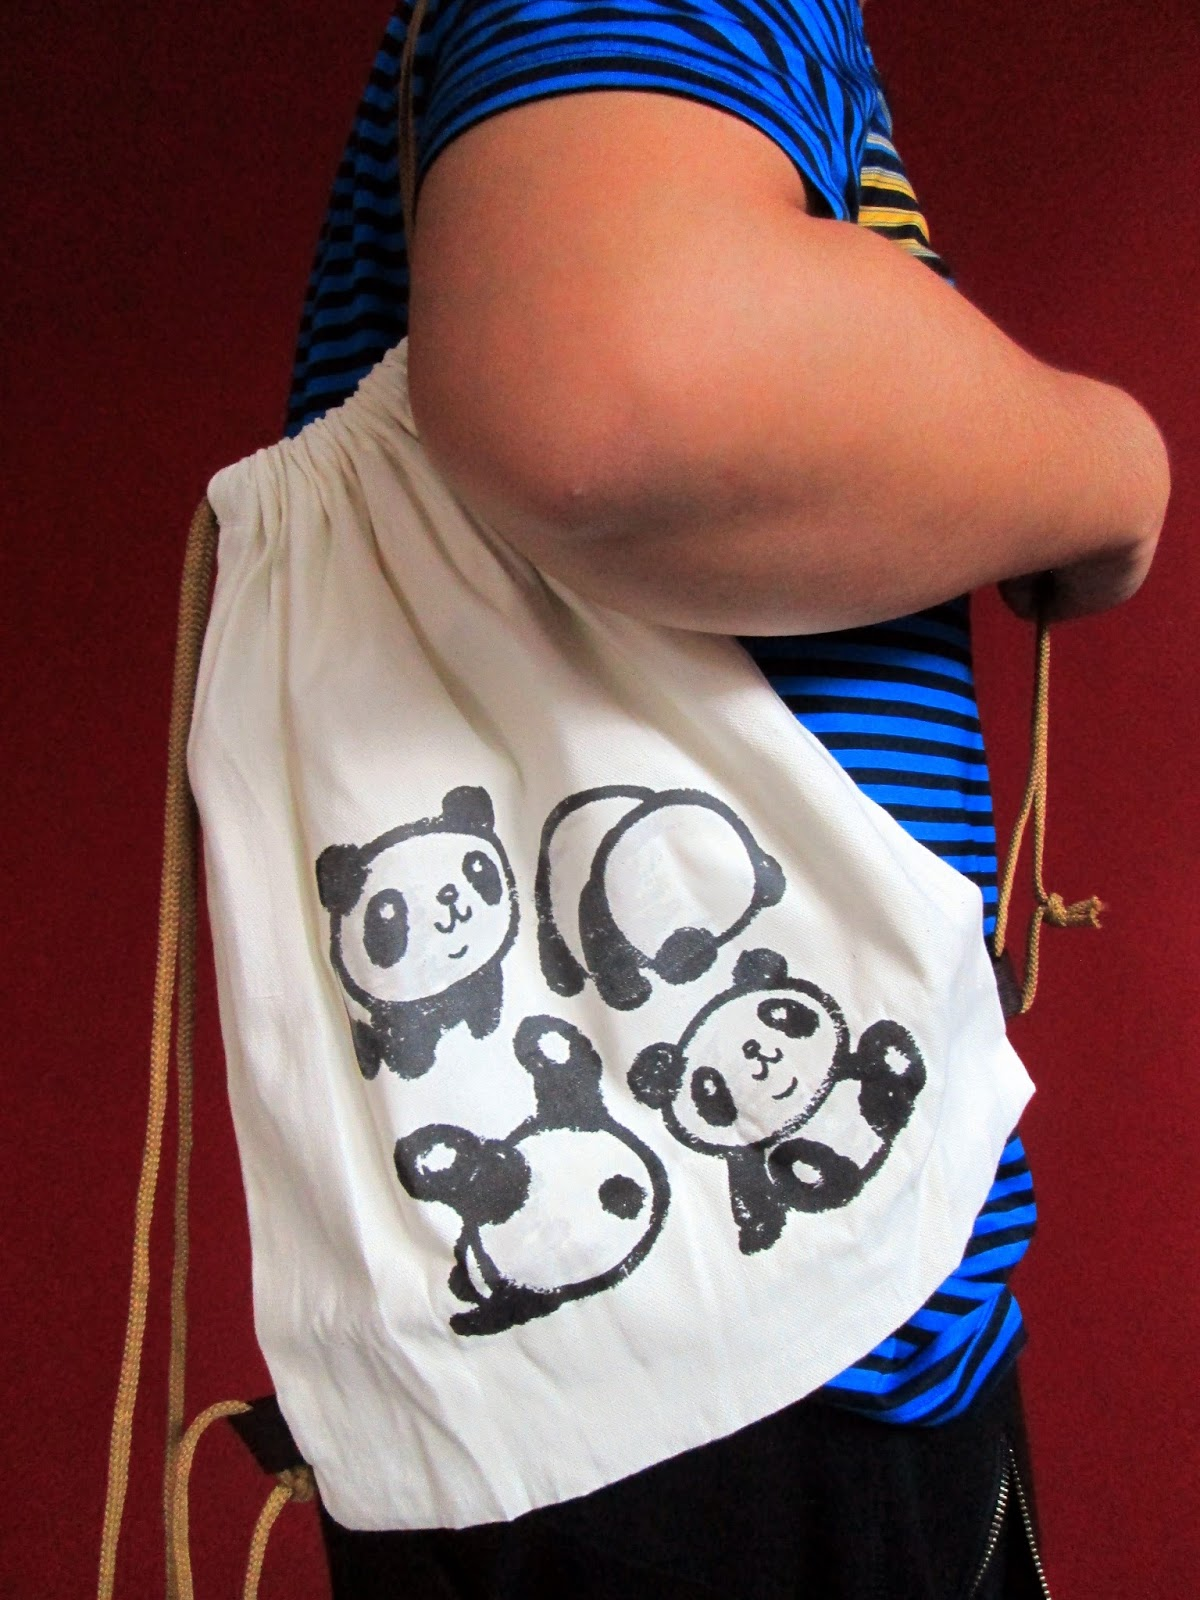 Lucky Citrine Something New Personalize It With Myriad Print Concepts Drawstring Bag Panda I Searched For A Cutie Patootie Illustration Online And Had Printed On This